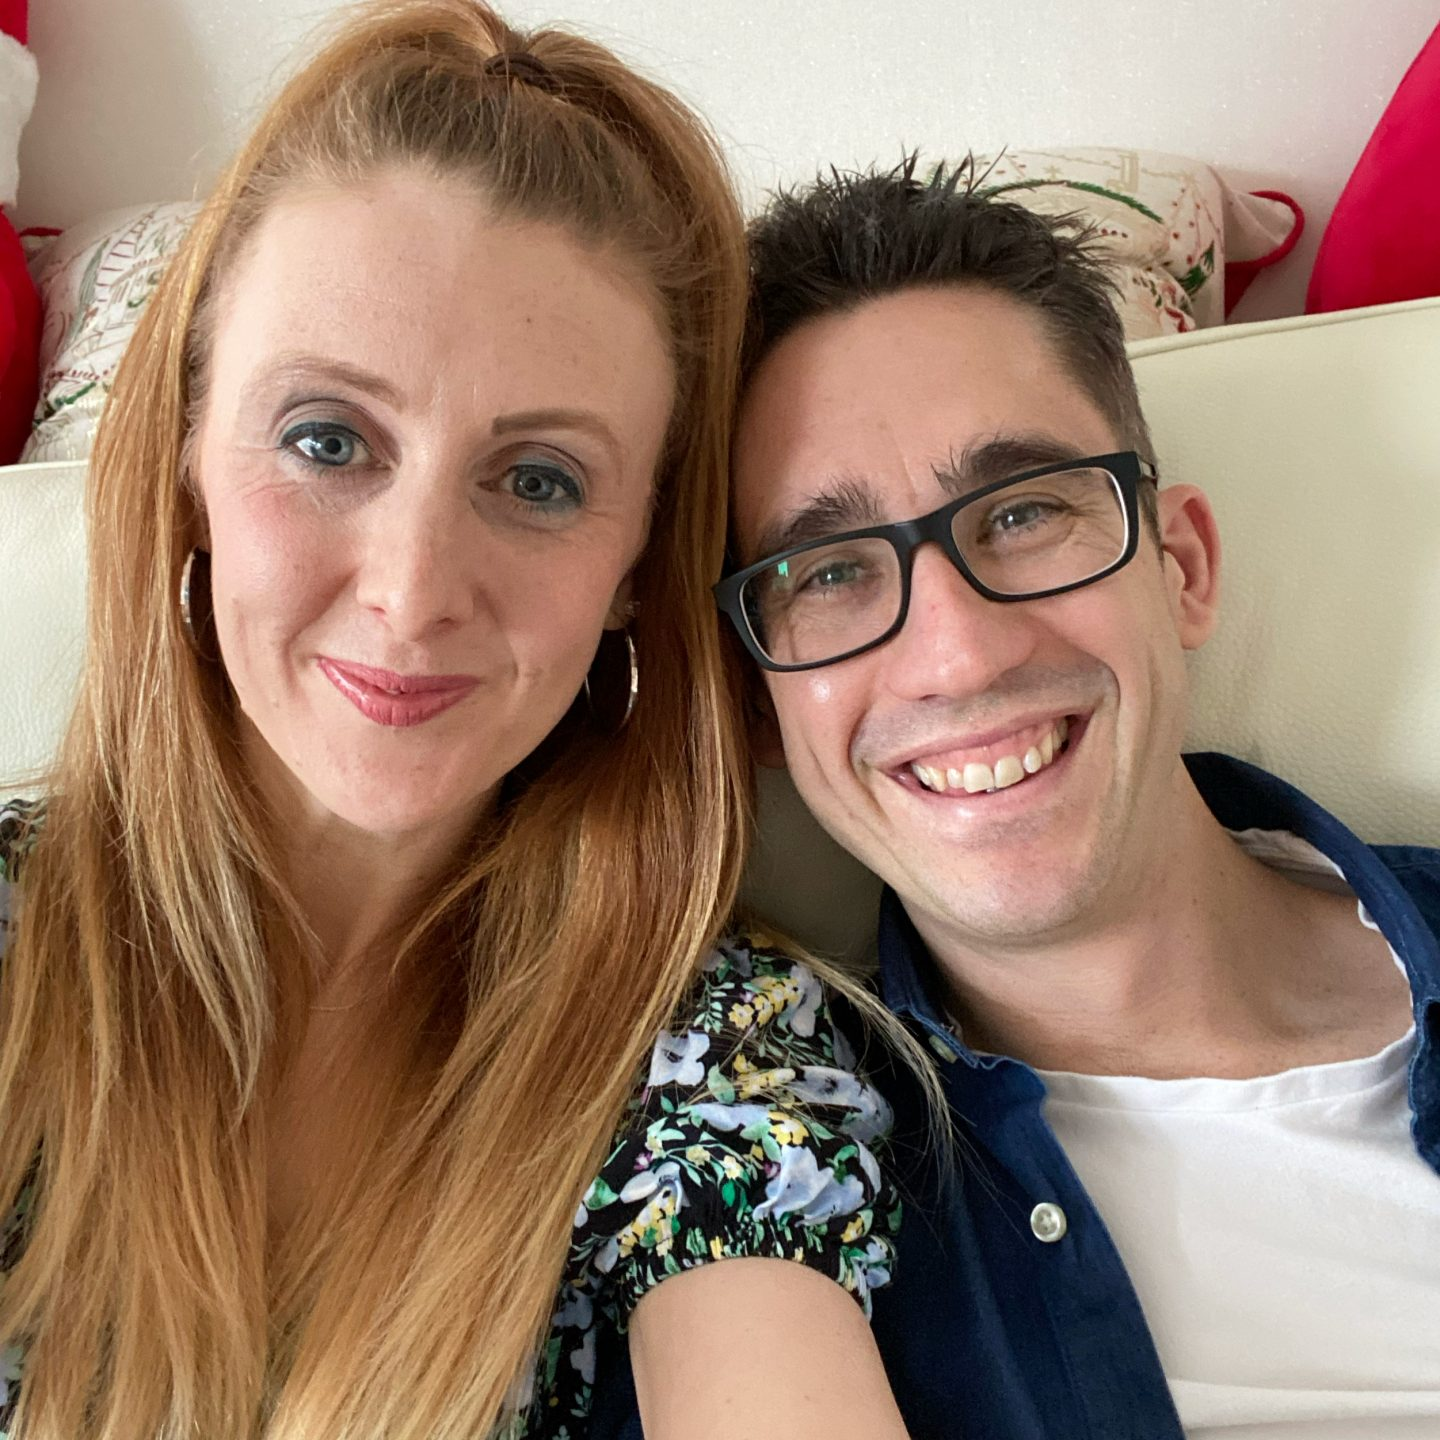 Having COVID Mildly – Our Experience